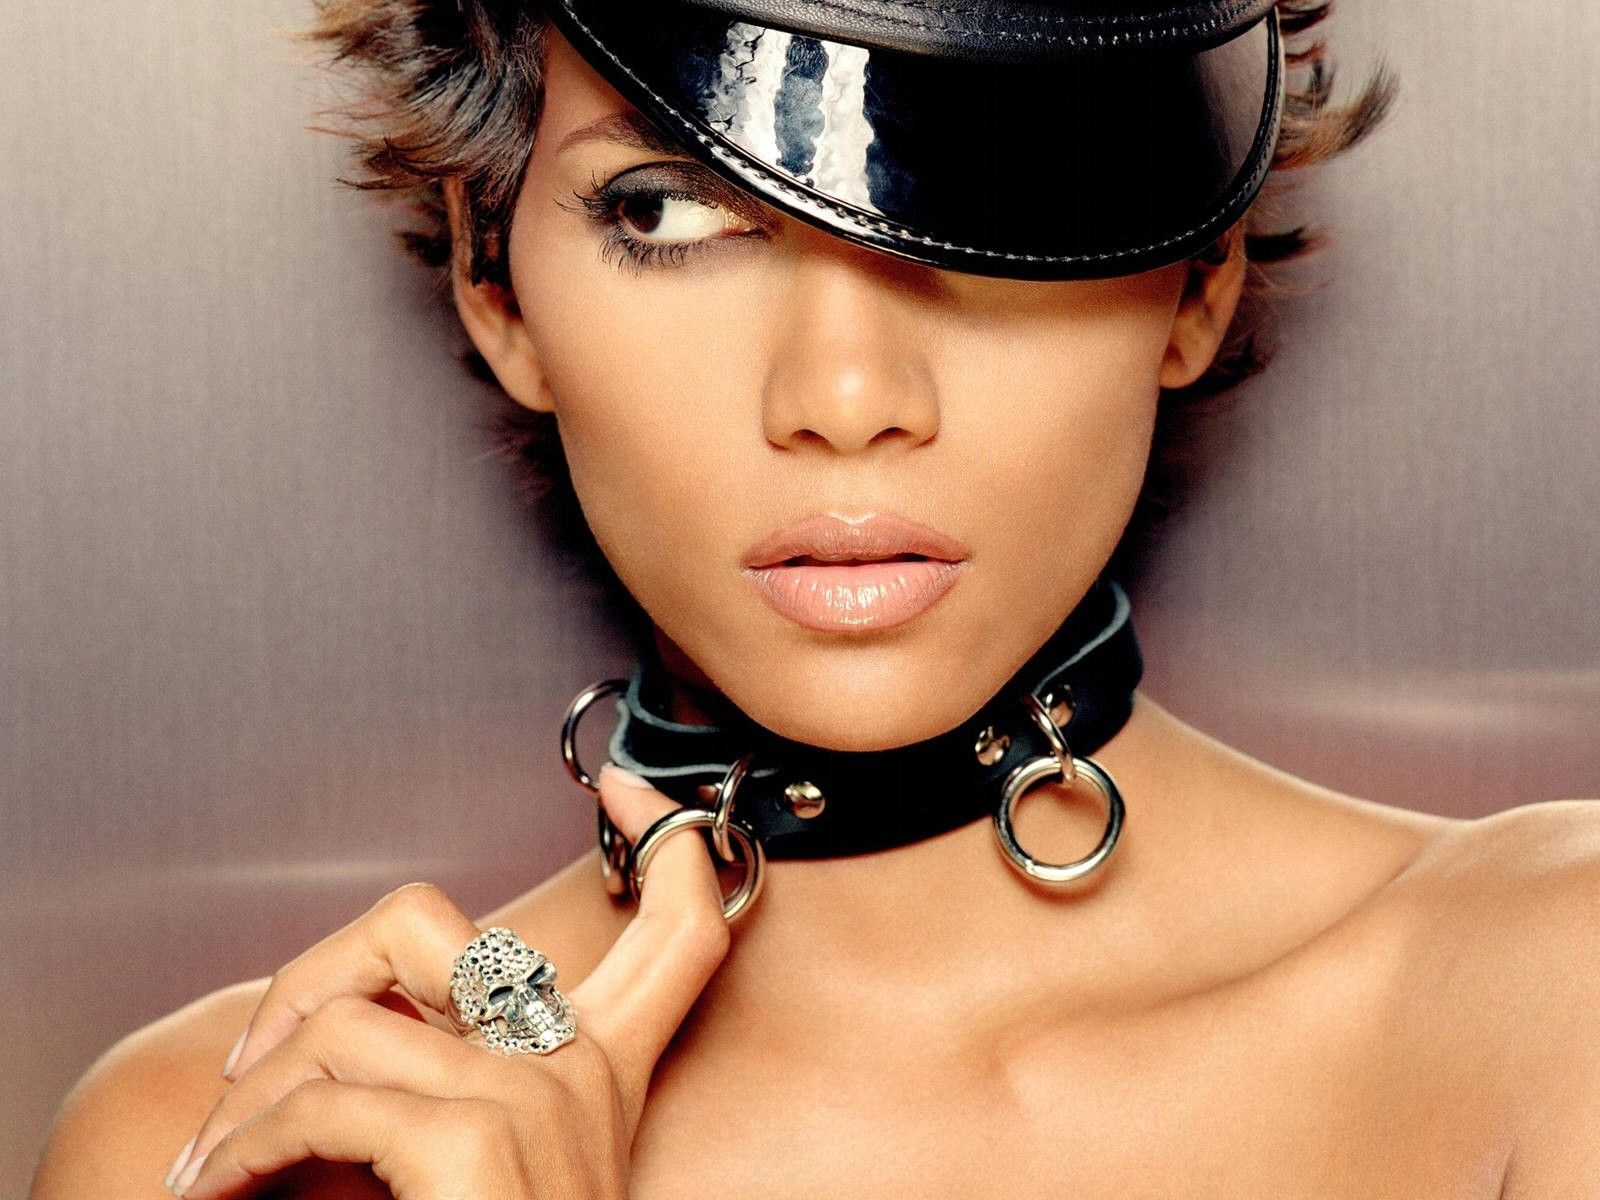 Wallpaper di Halle Berry in versione bad girl